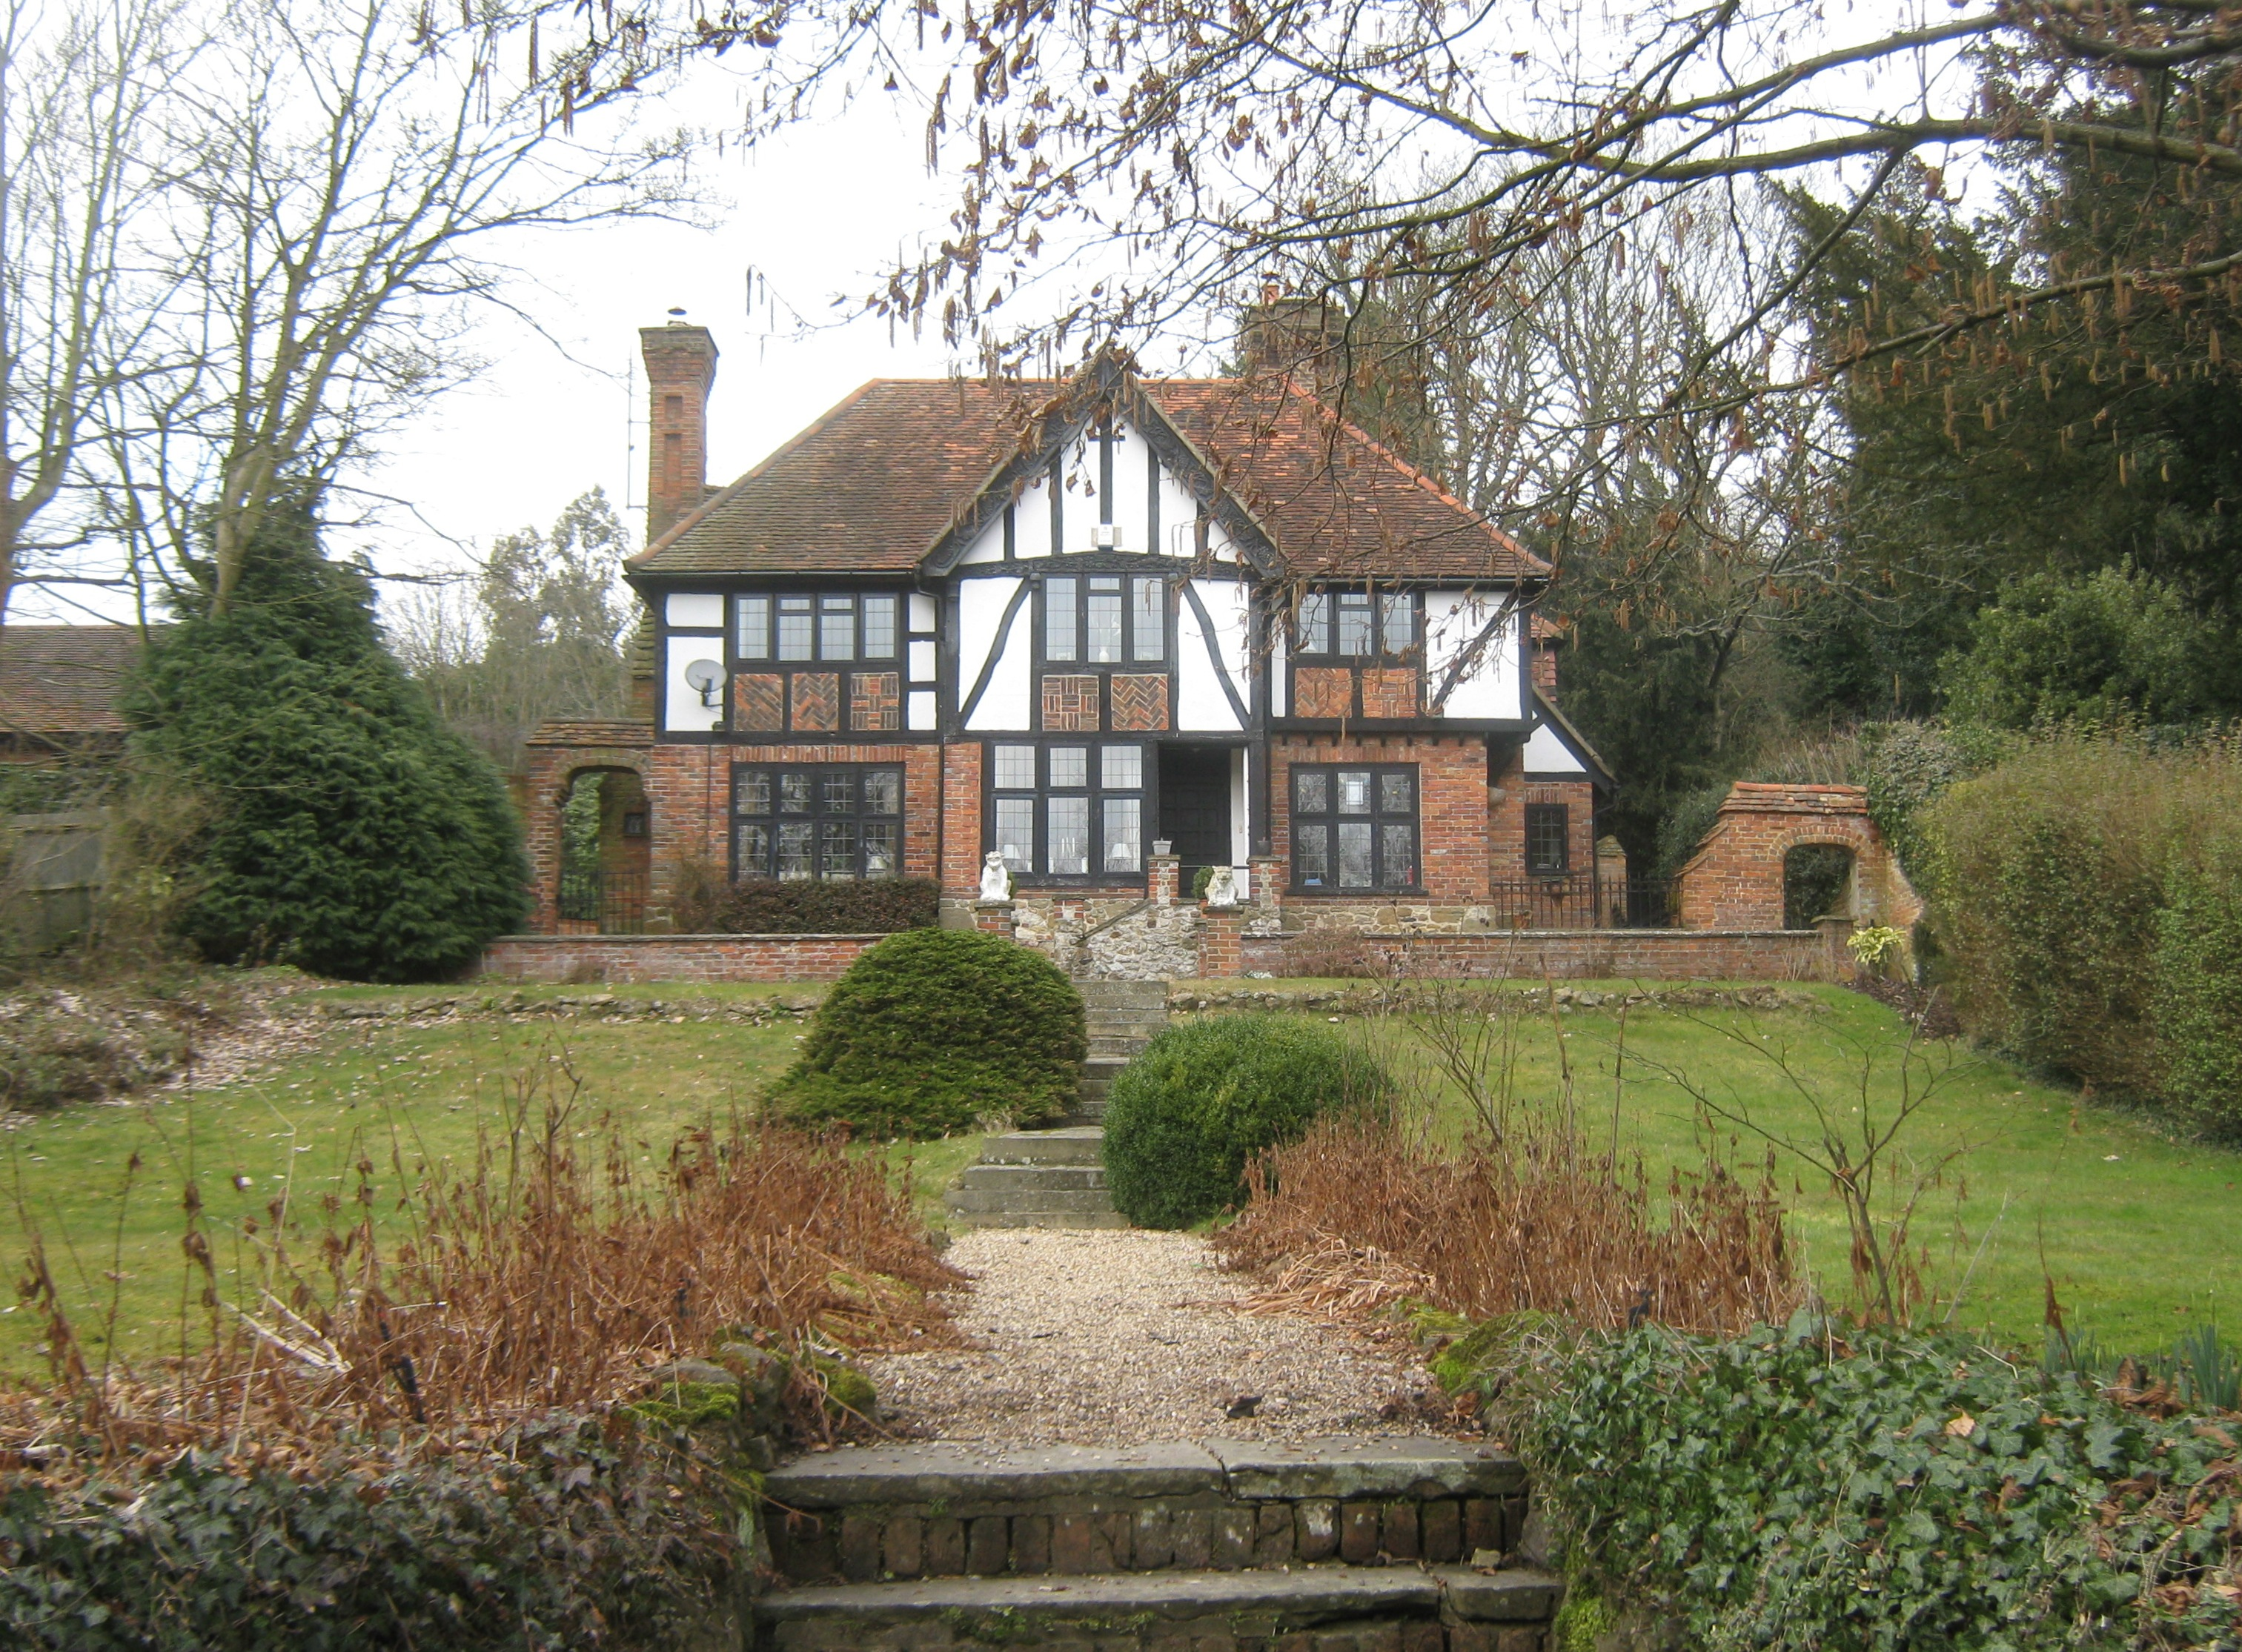 Small Cottages For Sale File Tudor House Geograph Org Uk 1756042 Jpg